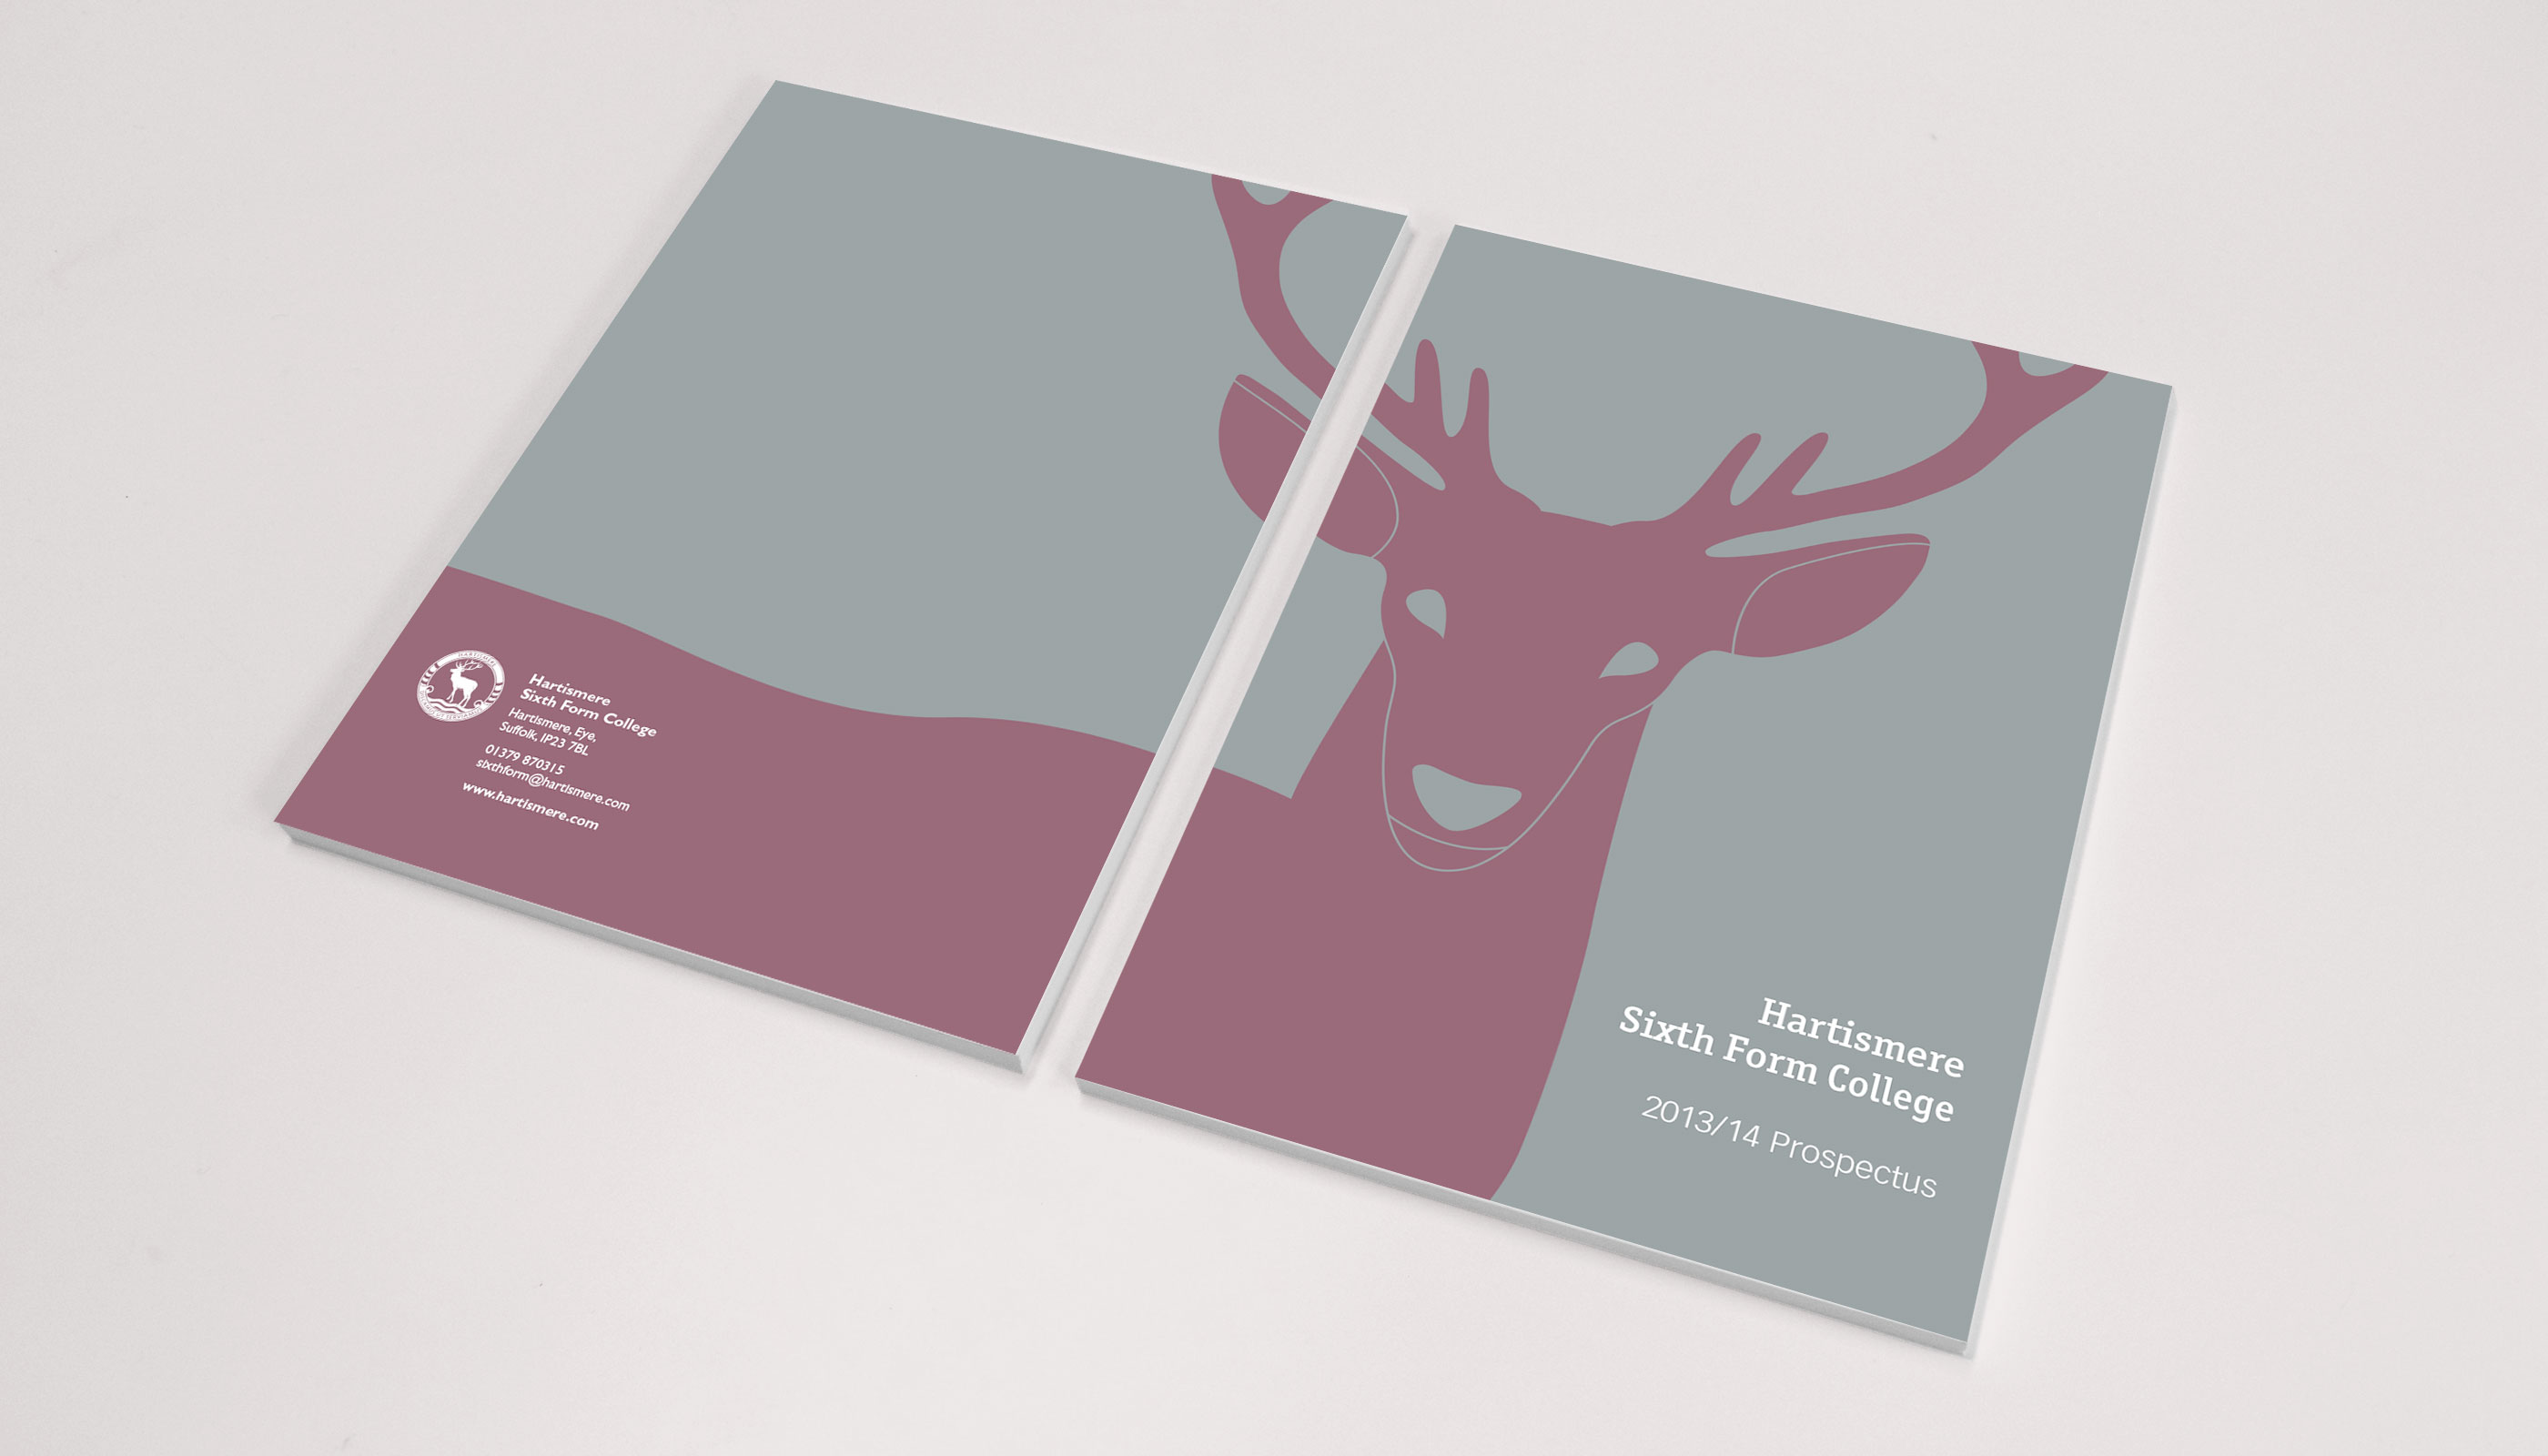 Prospectus design and print for Hartismere Sixth Form College in Eye, Suffolk.